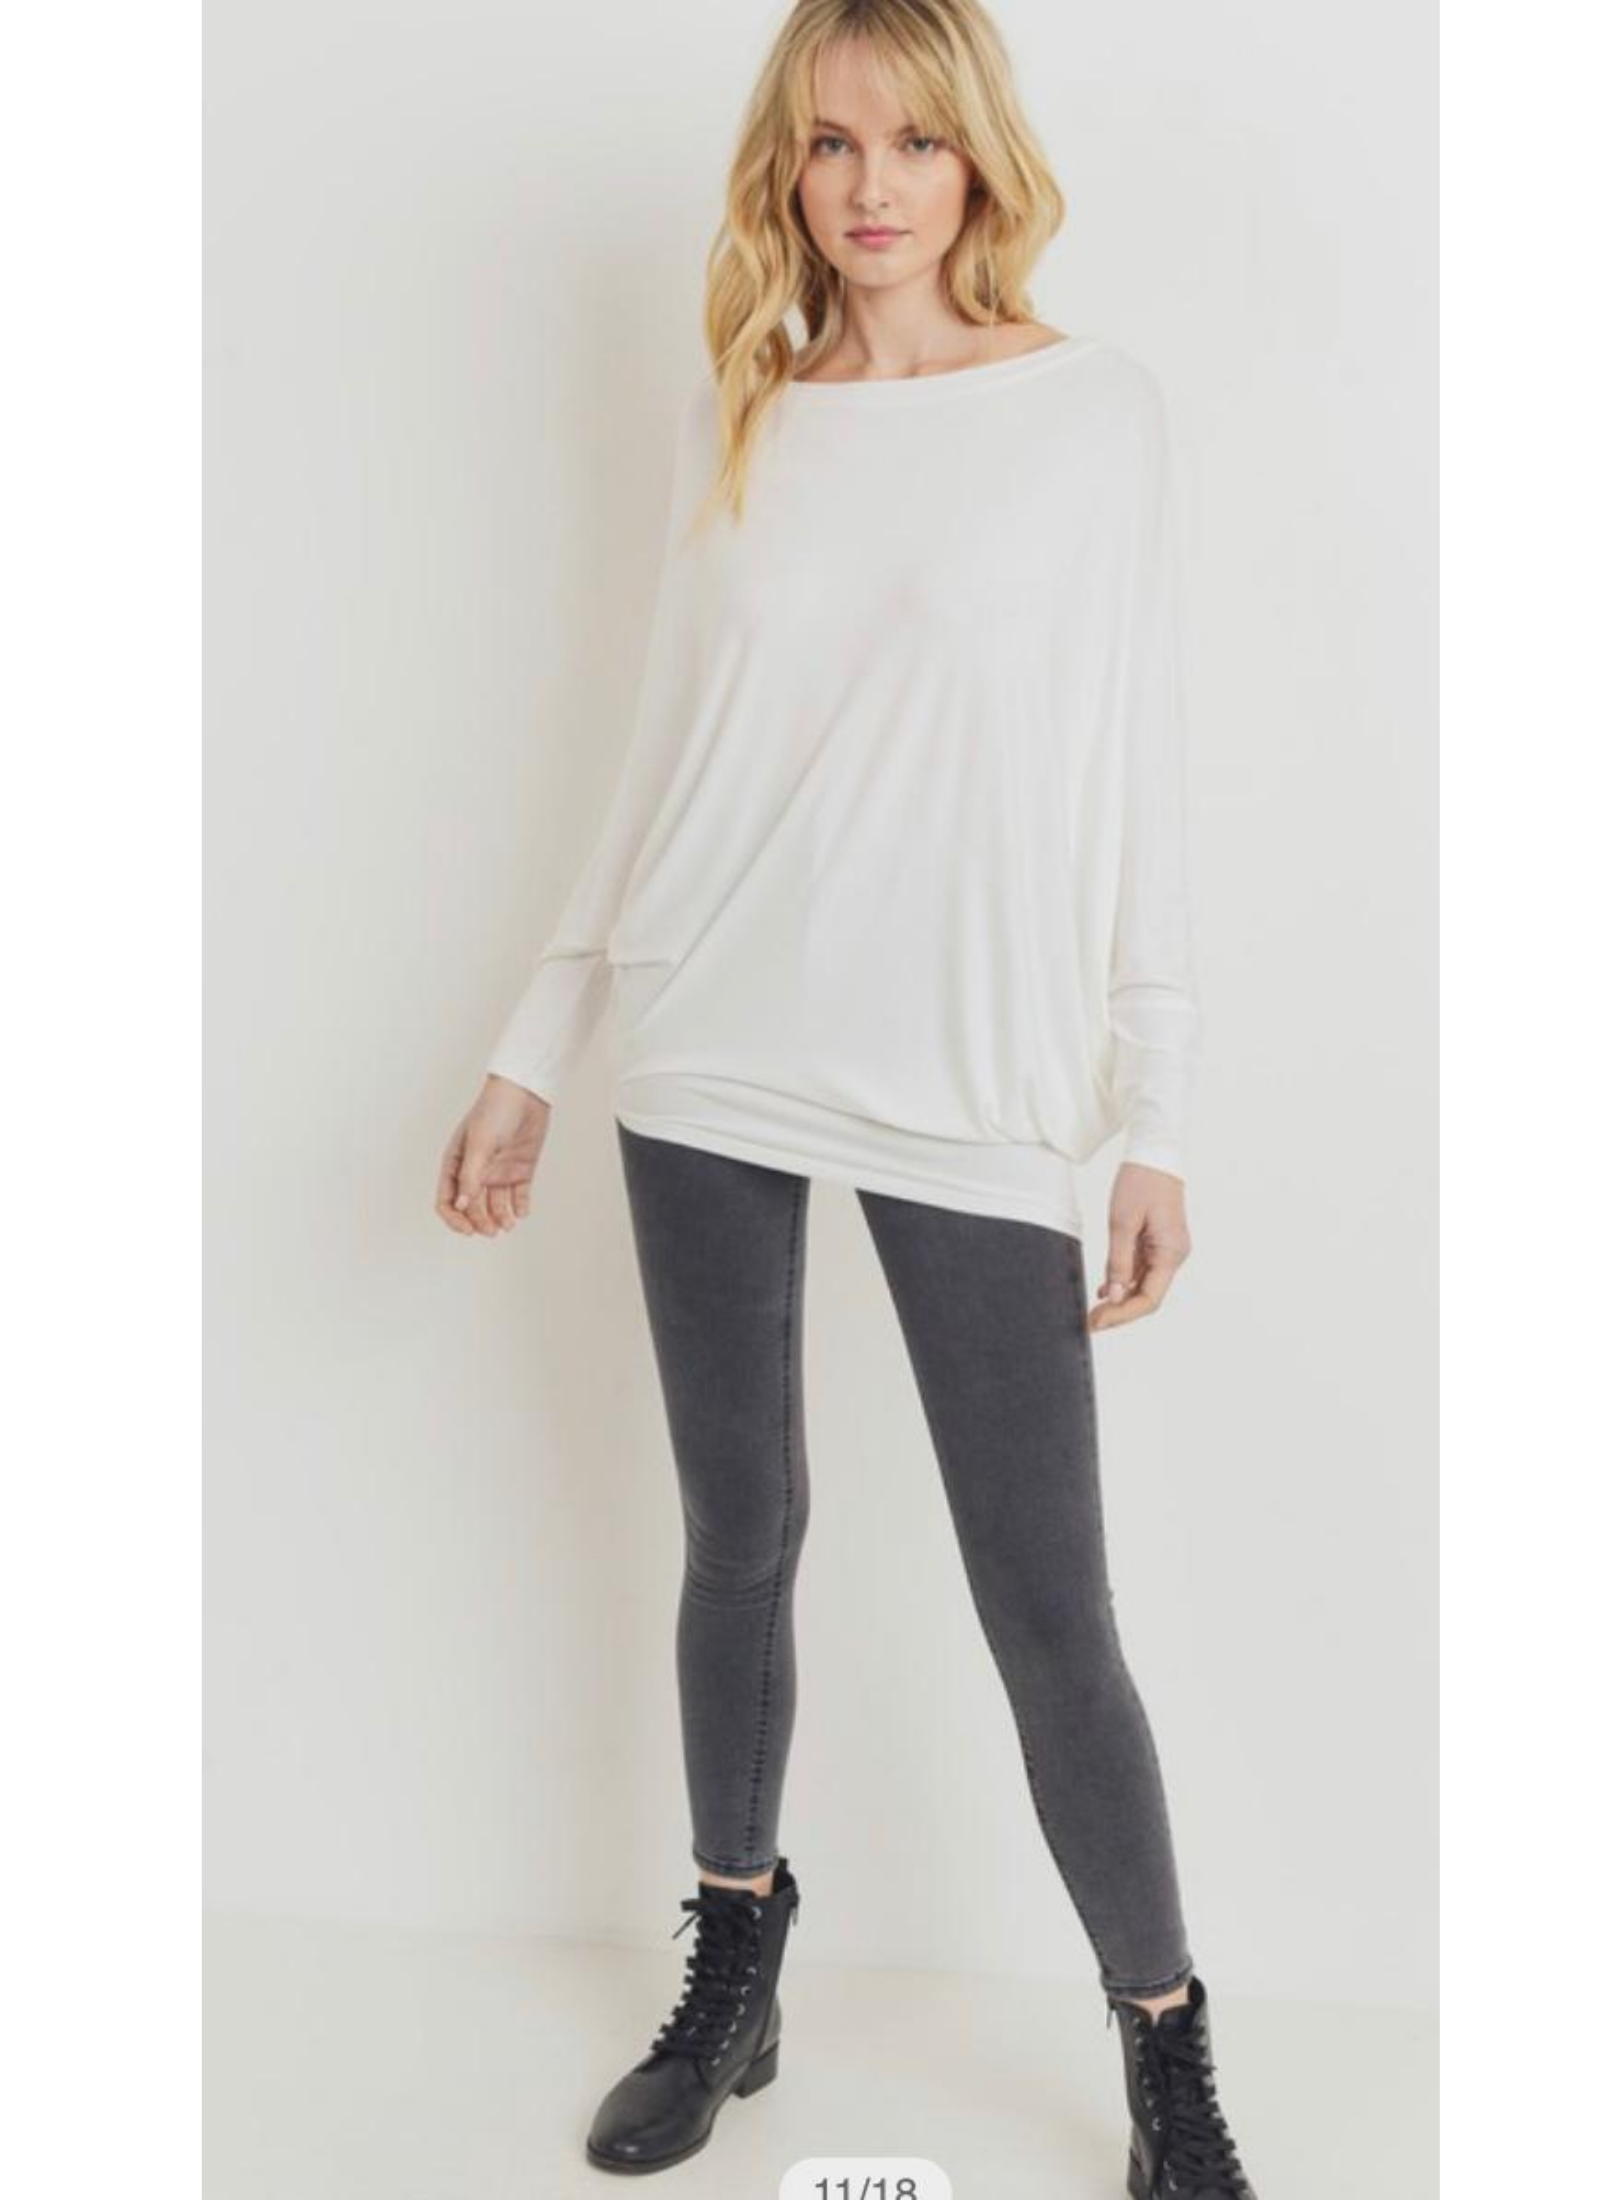 Asymmetrical Tunic White Top